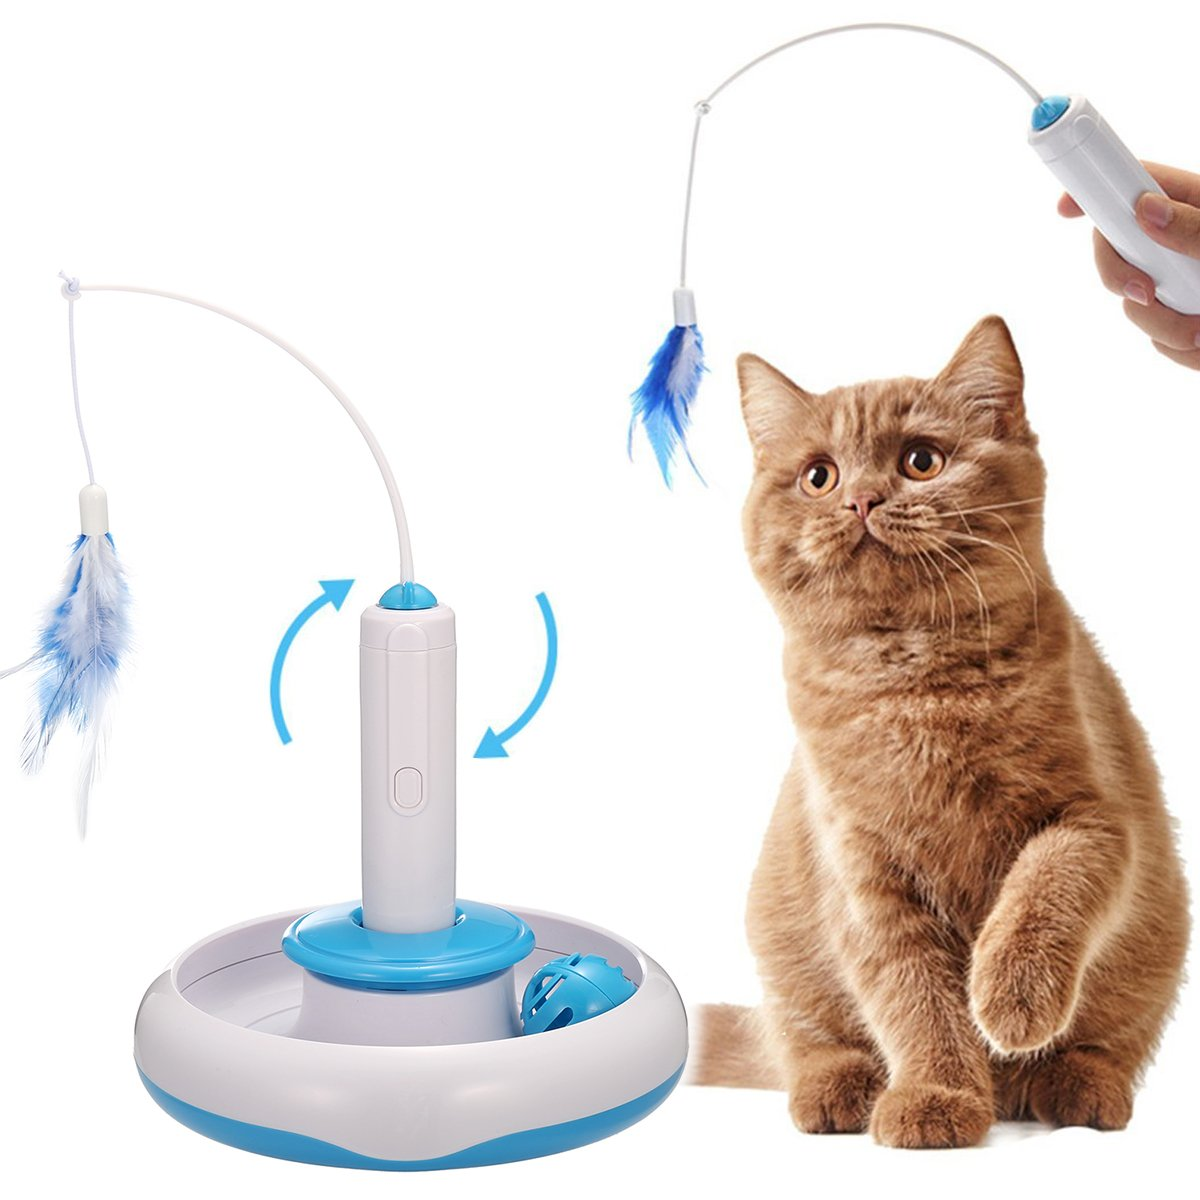 FOCUSPET Cat Interactive Toys, Electric Rotate Feather Toys Spinning Teaser Wand Motion Cat Toy Automated Activity Toy for Cats Kitten